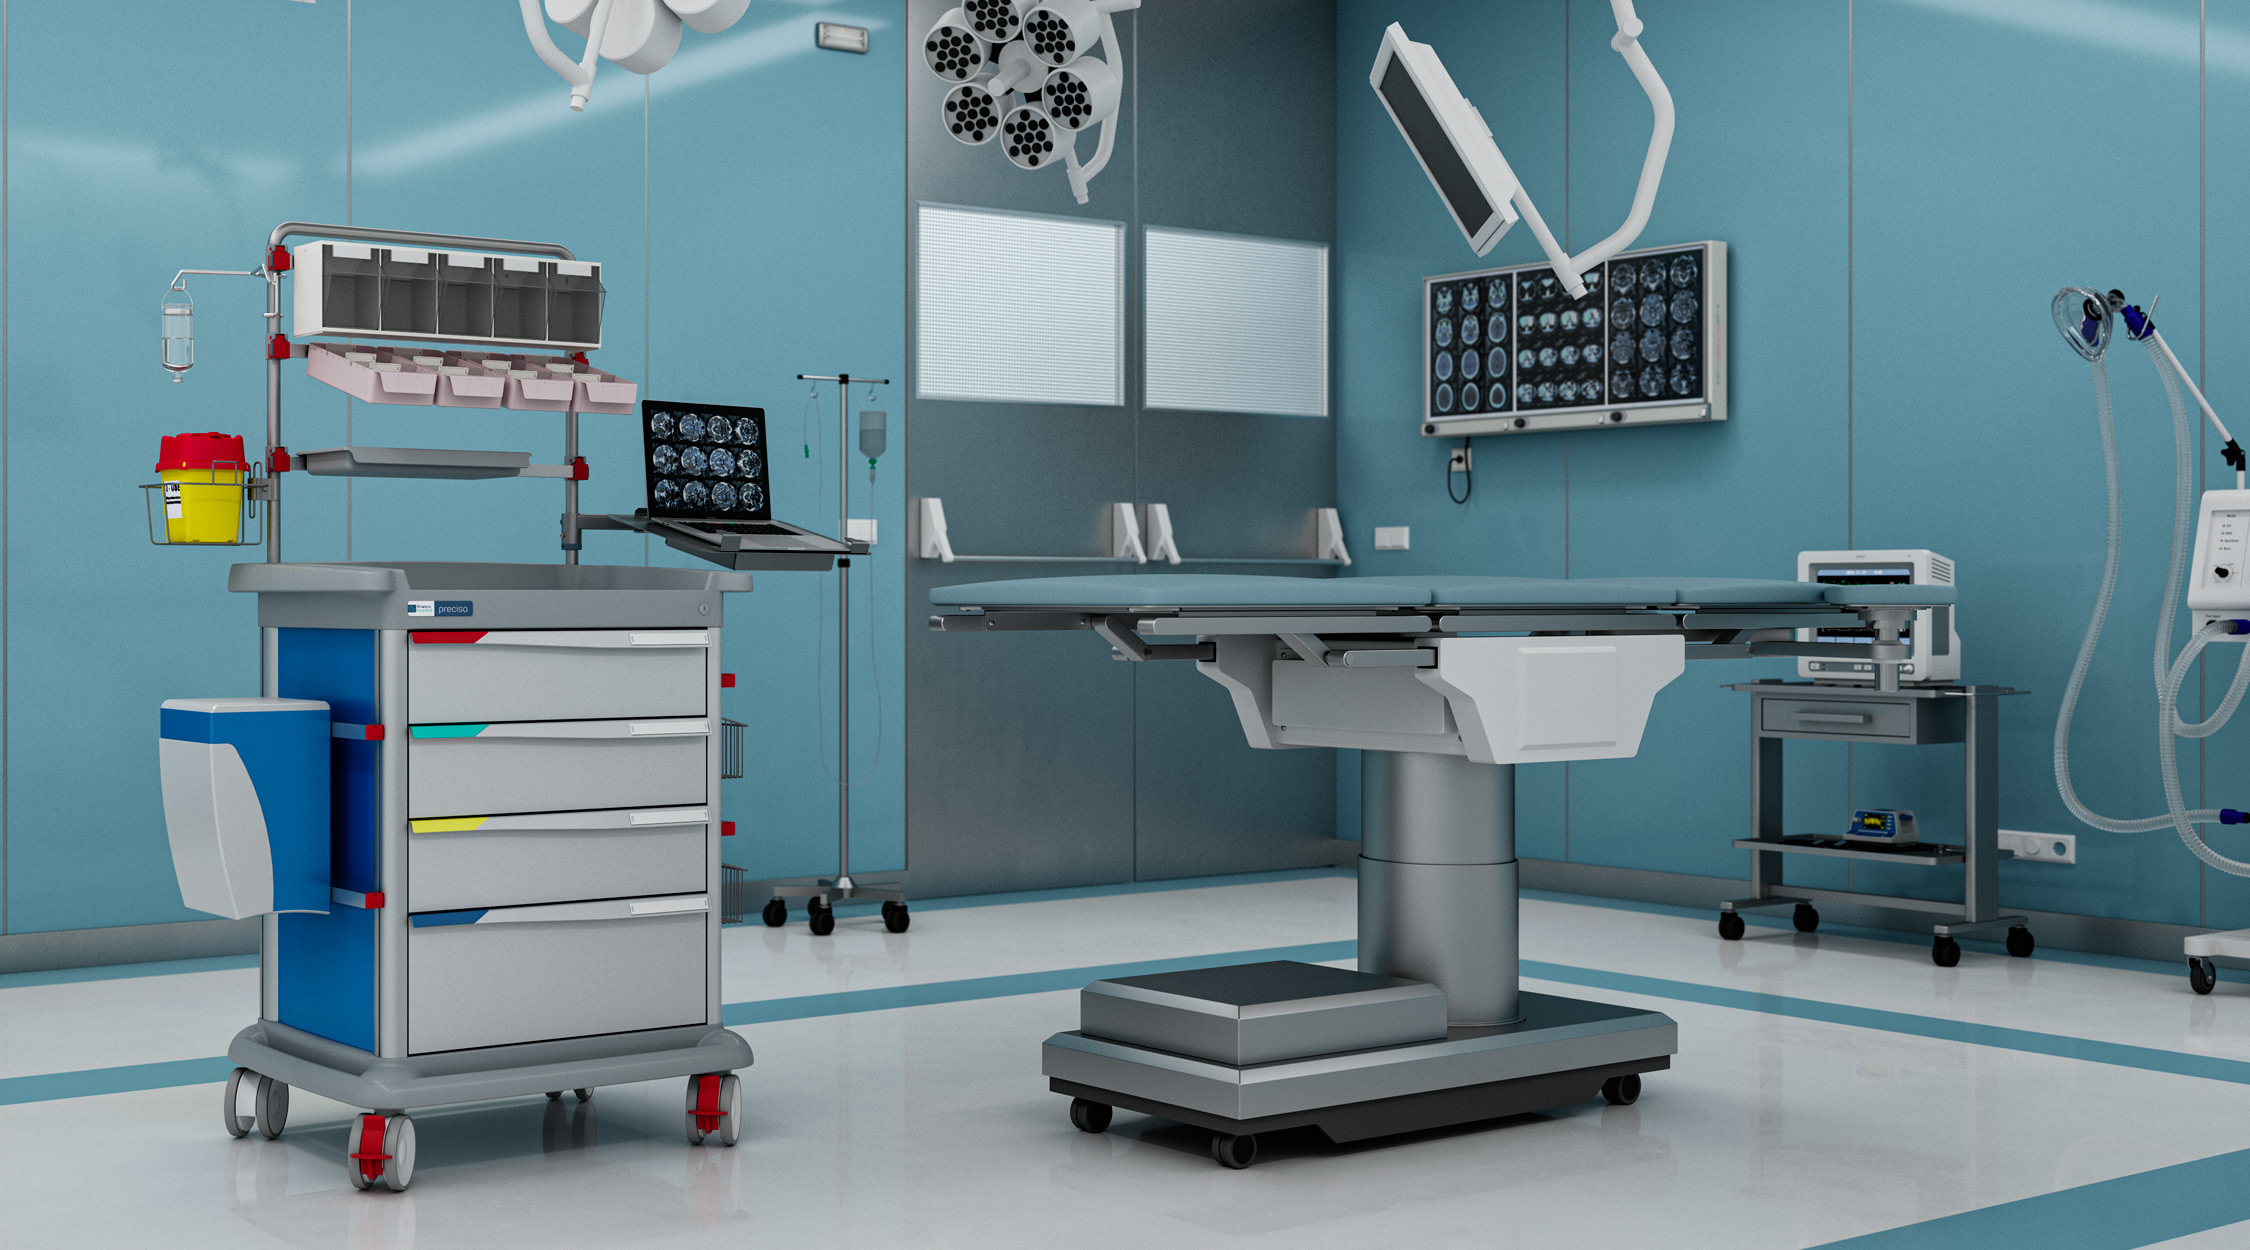 Preciso anaesthesia trolley in an operating room